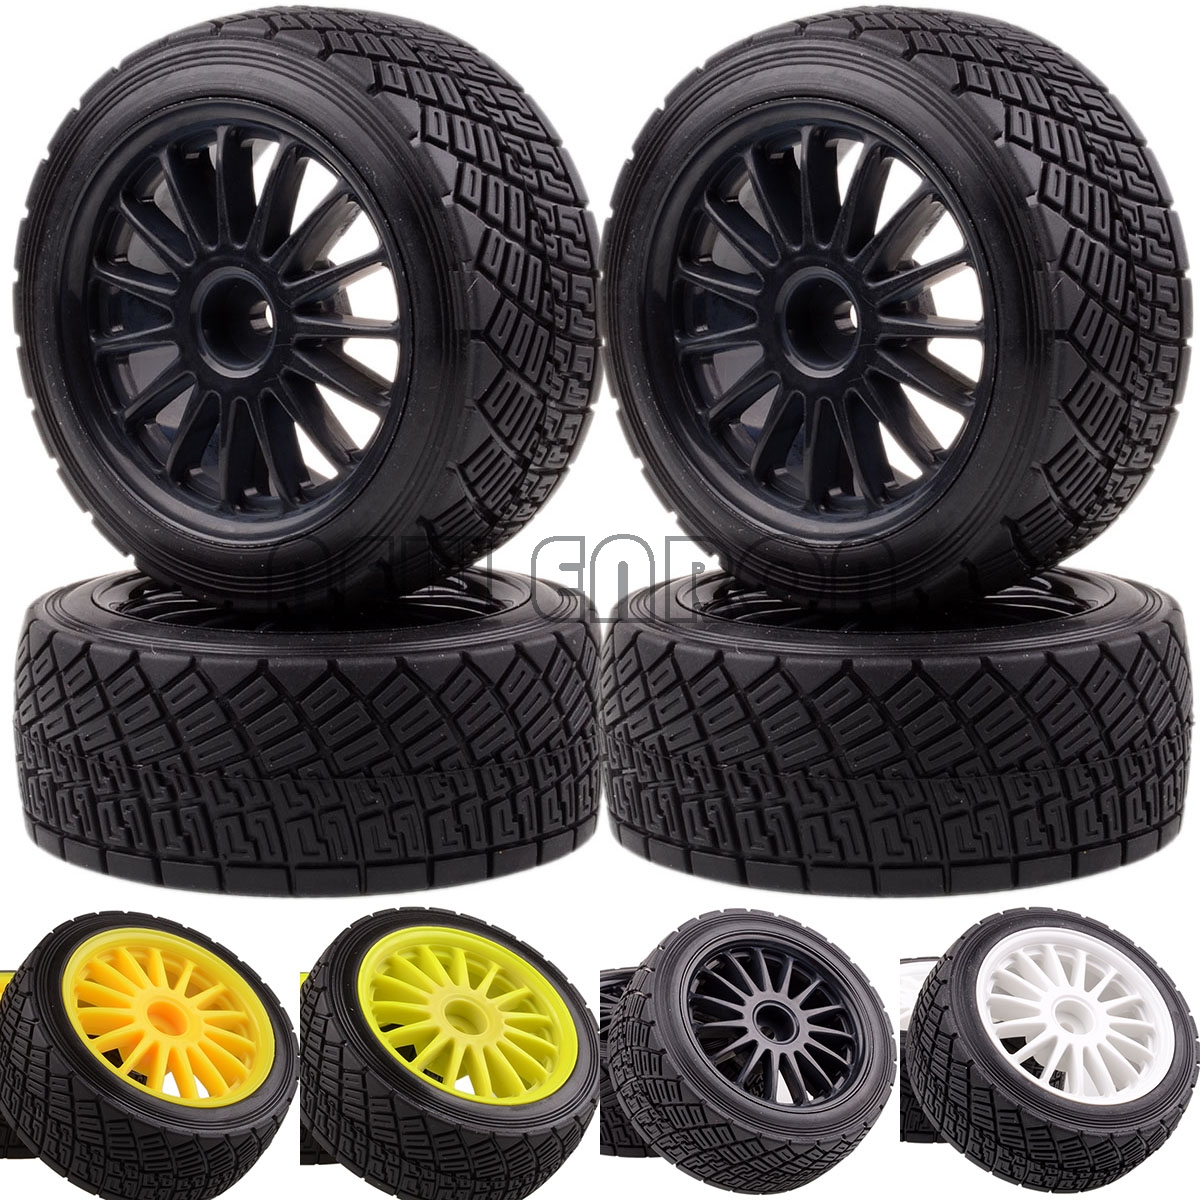 NEW ENRON 4P 2.2 Inch <font><b>Wheel</b></font> Rims Hub & 80MM Tires Tyre <font><b>RC</b></font> CAR PART <font><b>RC</b></font> CAR 1/10 Fit 1:10 HPI WR8 Flux <font><b>Rally</b></font> 3.0 110697 94177 image